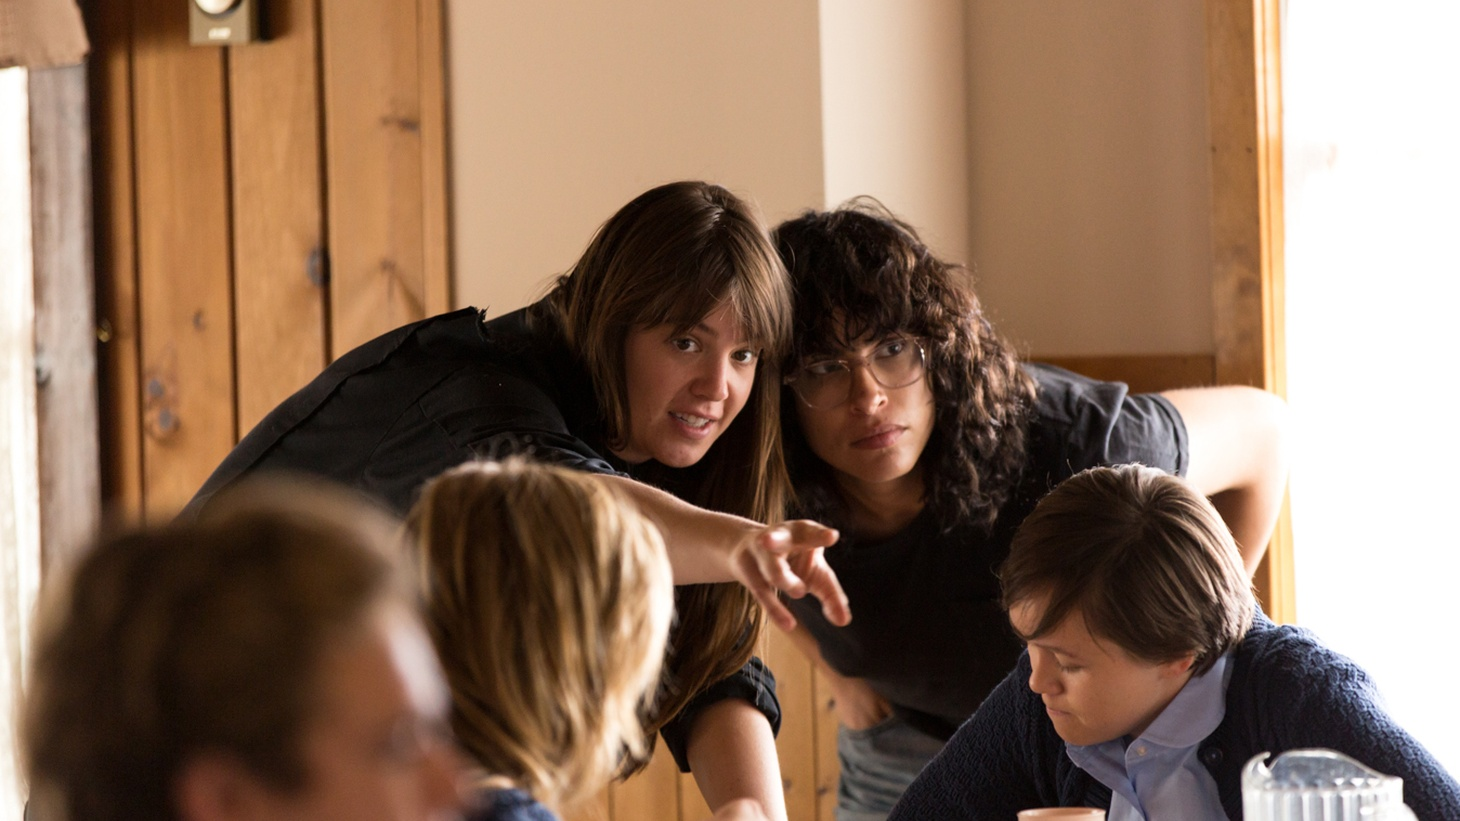 After her first feature premiered at Sundance to strong reviews, director Desiree Akhavan thought finding money to make a second film would be a snap.